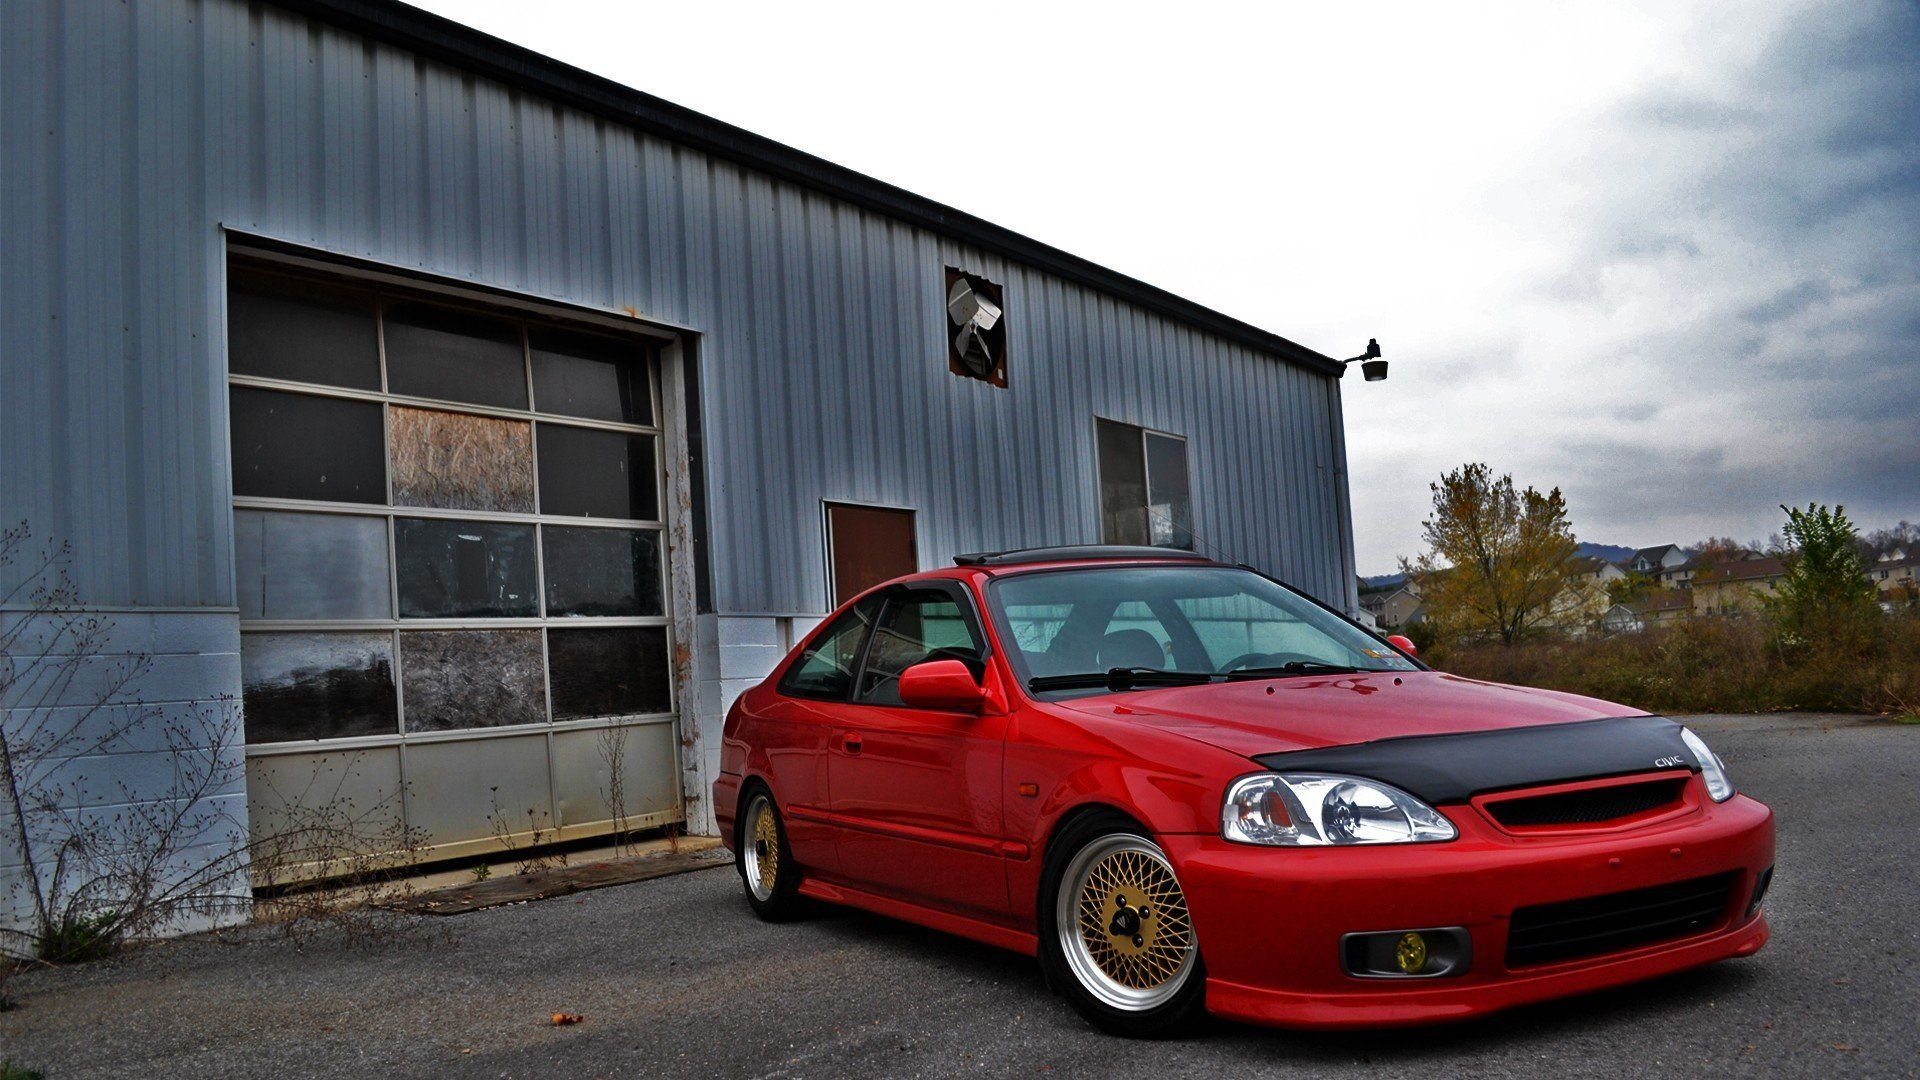 Gold Stance Civic Jdm Authentic Auto Slam Stance, Civic, Jdm, Auto) Via Www.